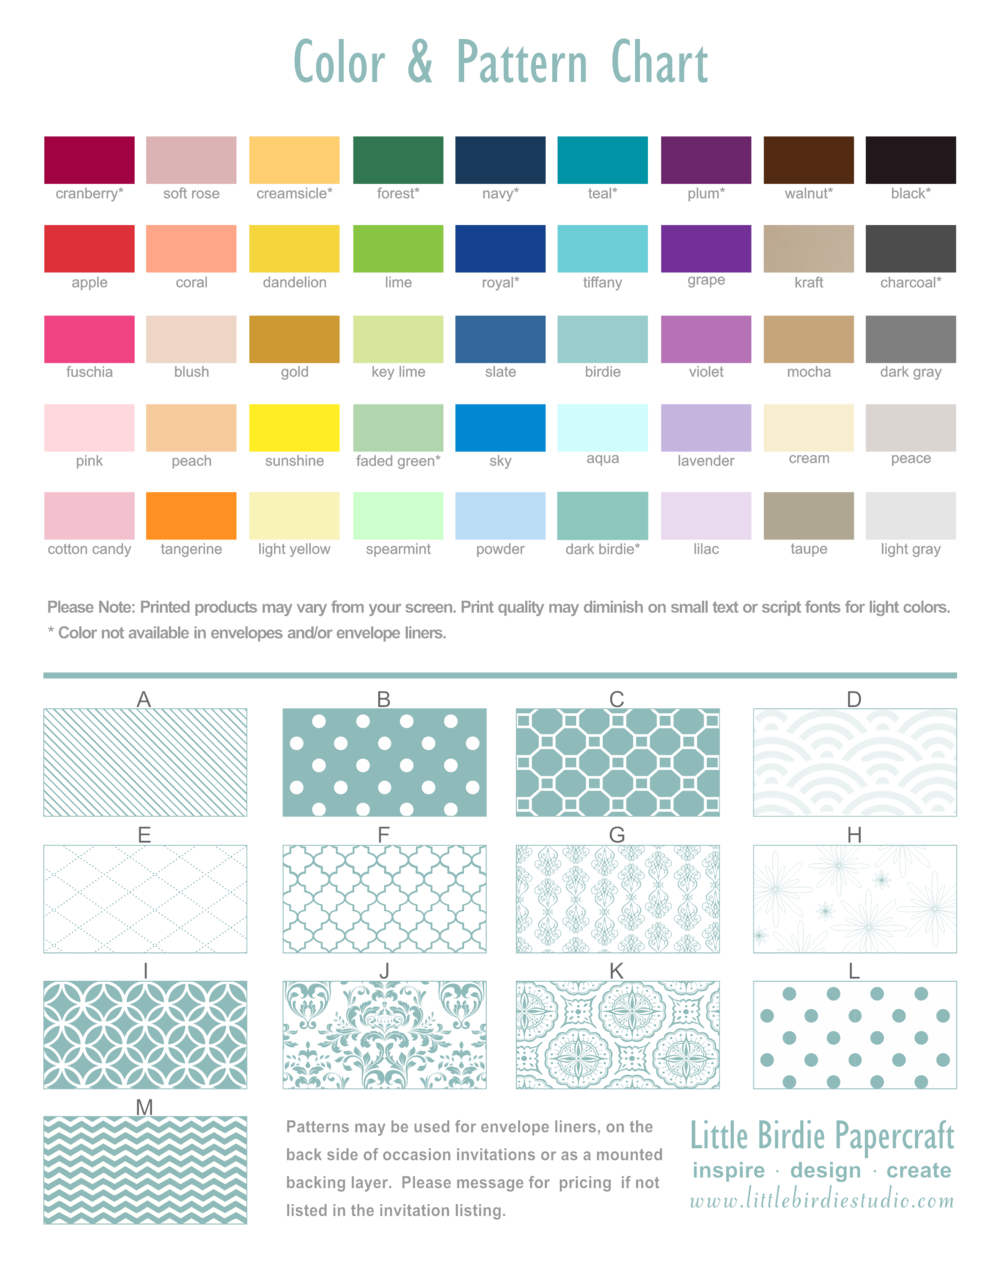 Color and Pattern Chart.png